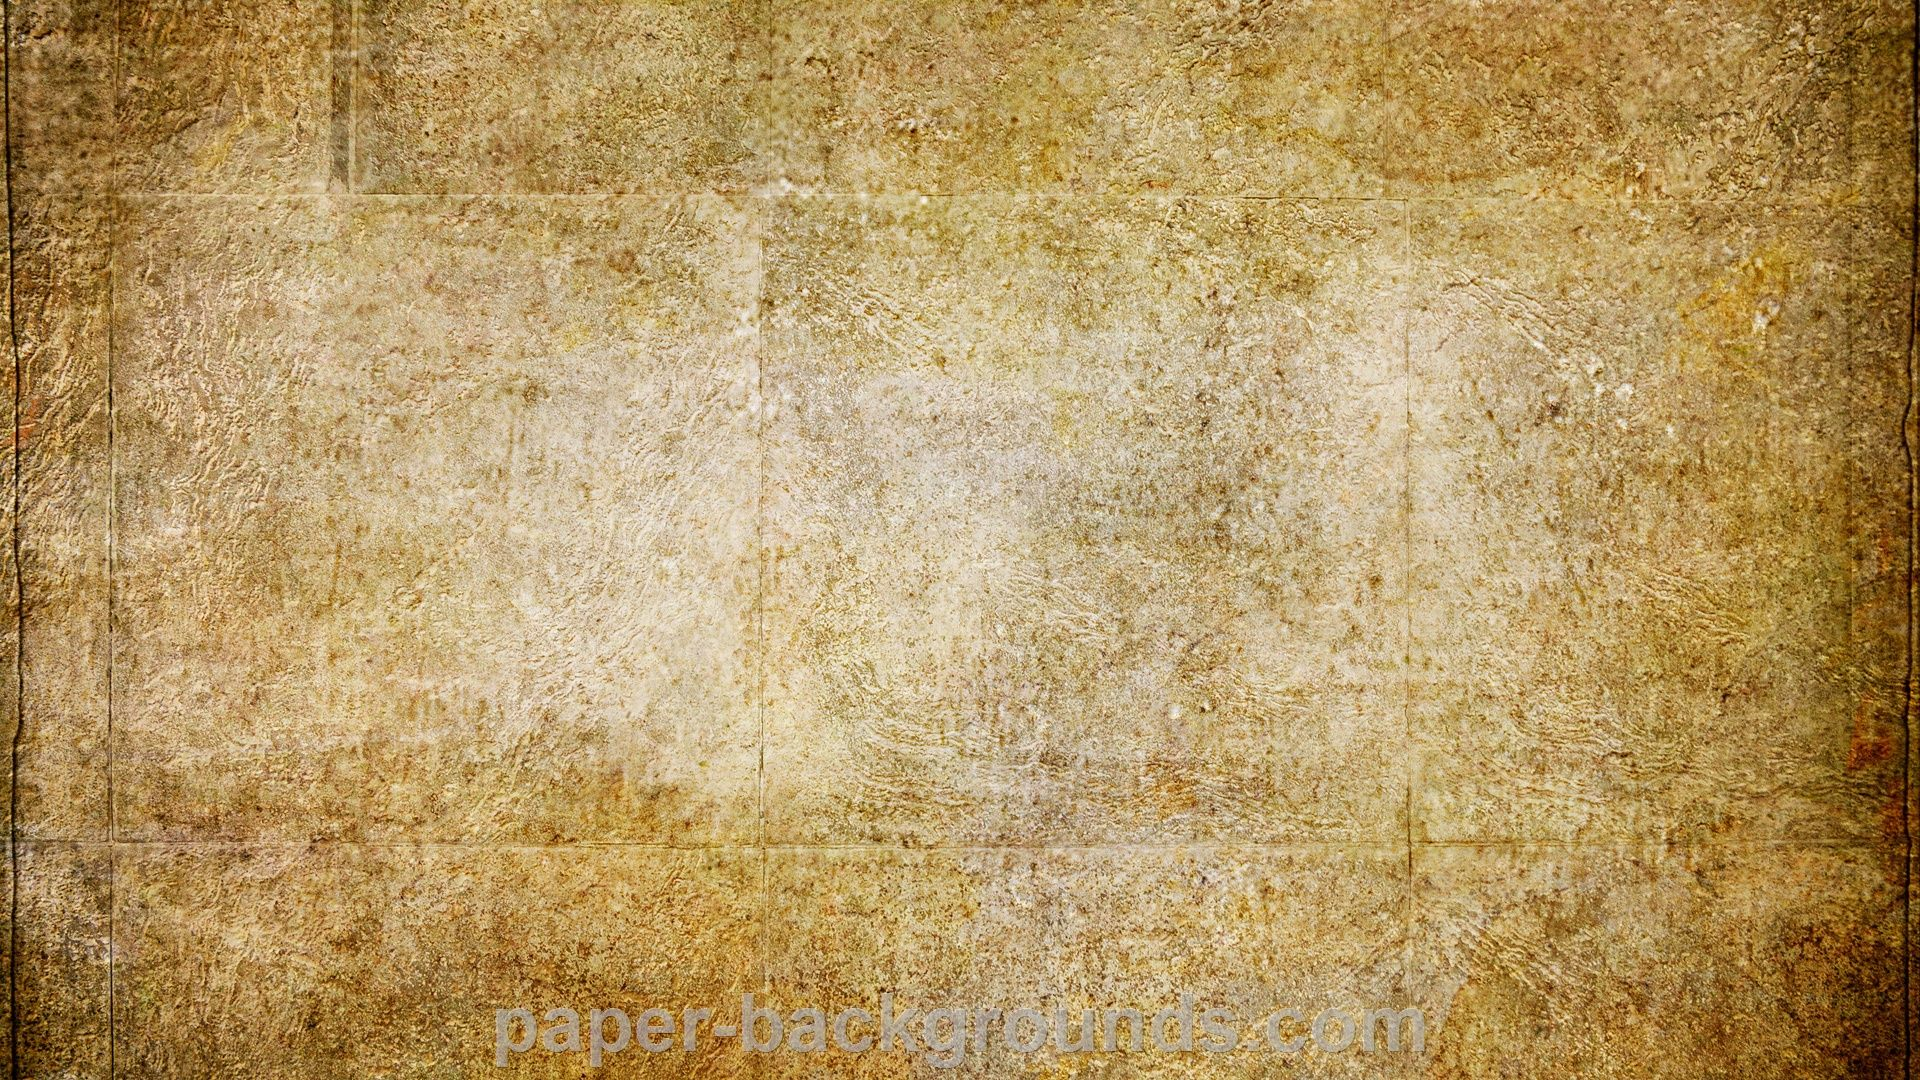 Download Grunge Wall Background Texture Hd Paper Backgrounds Wallpaper Grunge Paper Textures Grunge Textures Black Textured Wallpaper